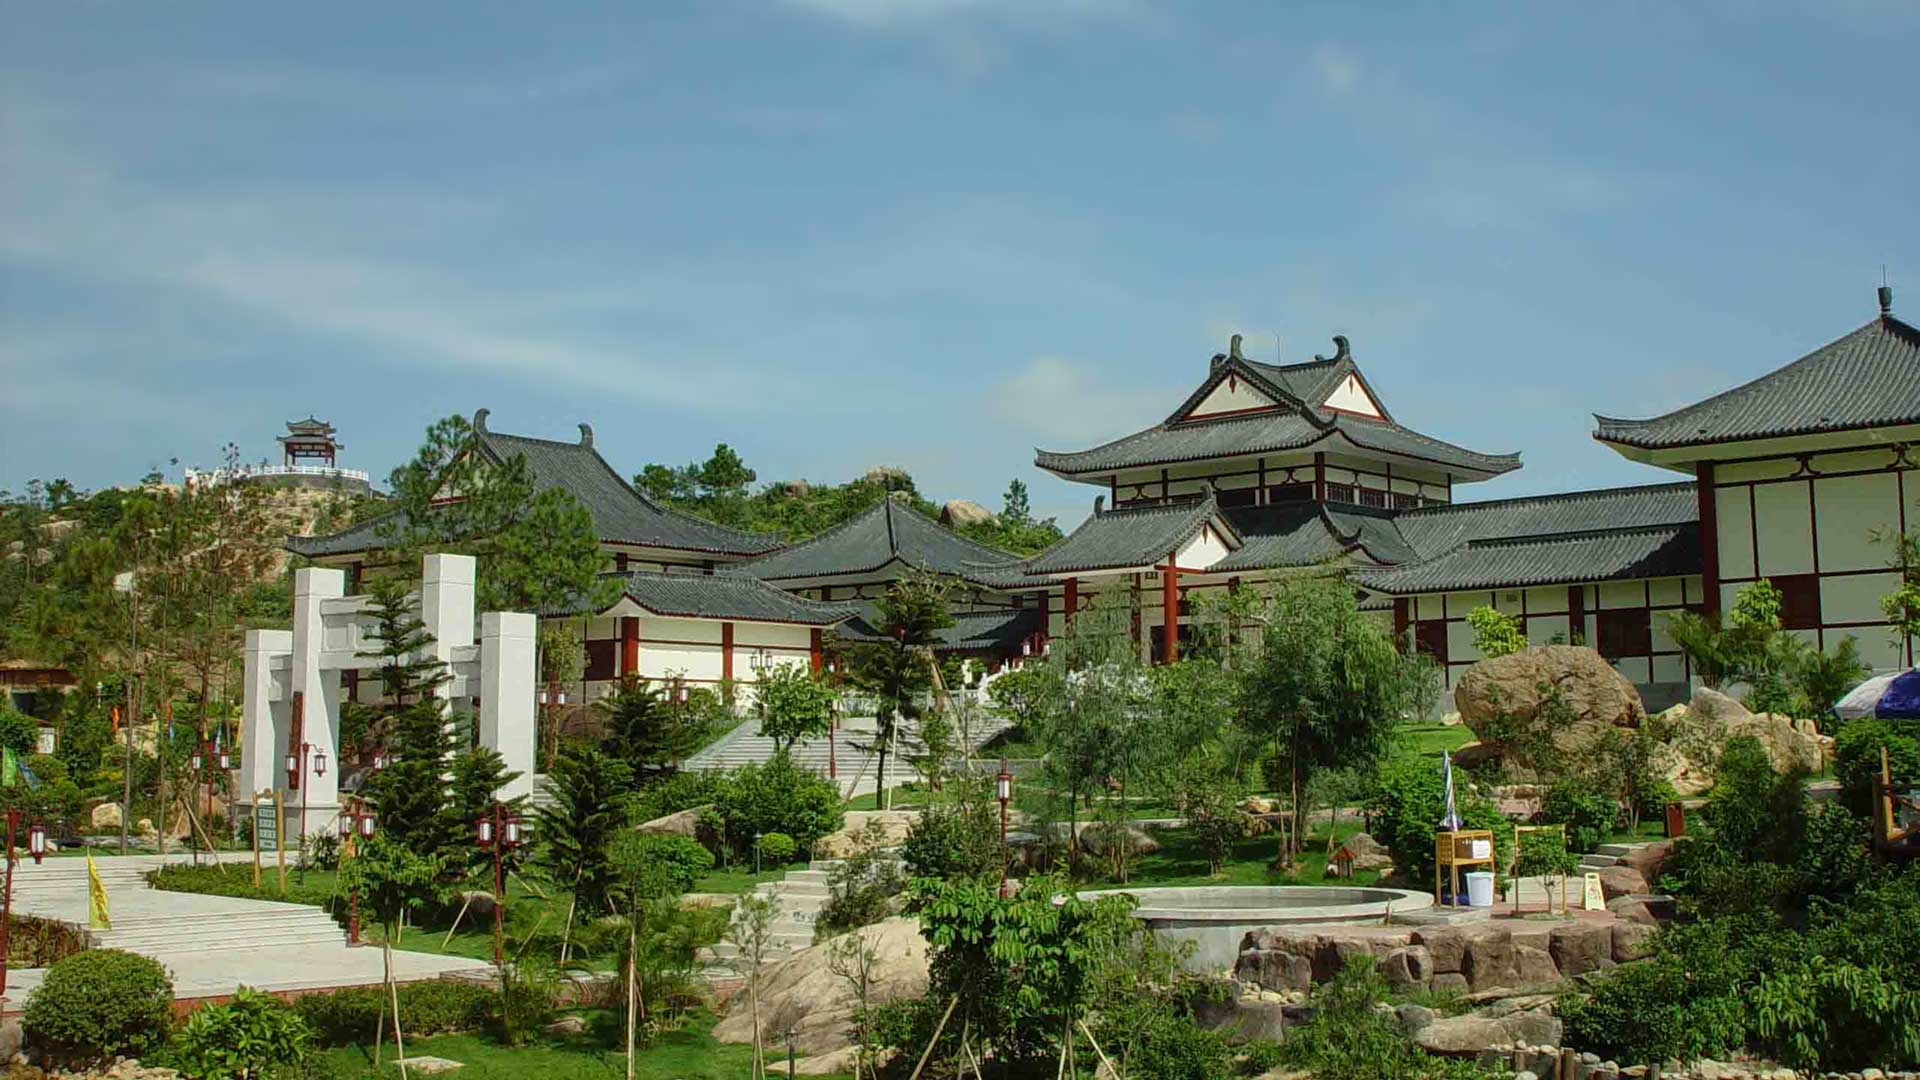 Gudou Hotspring Resort in Jiangmen